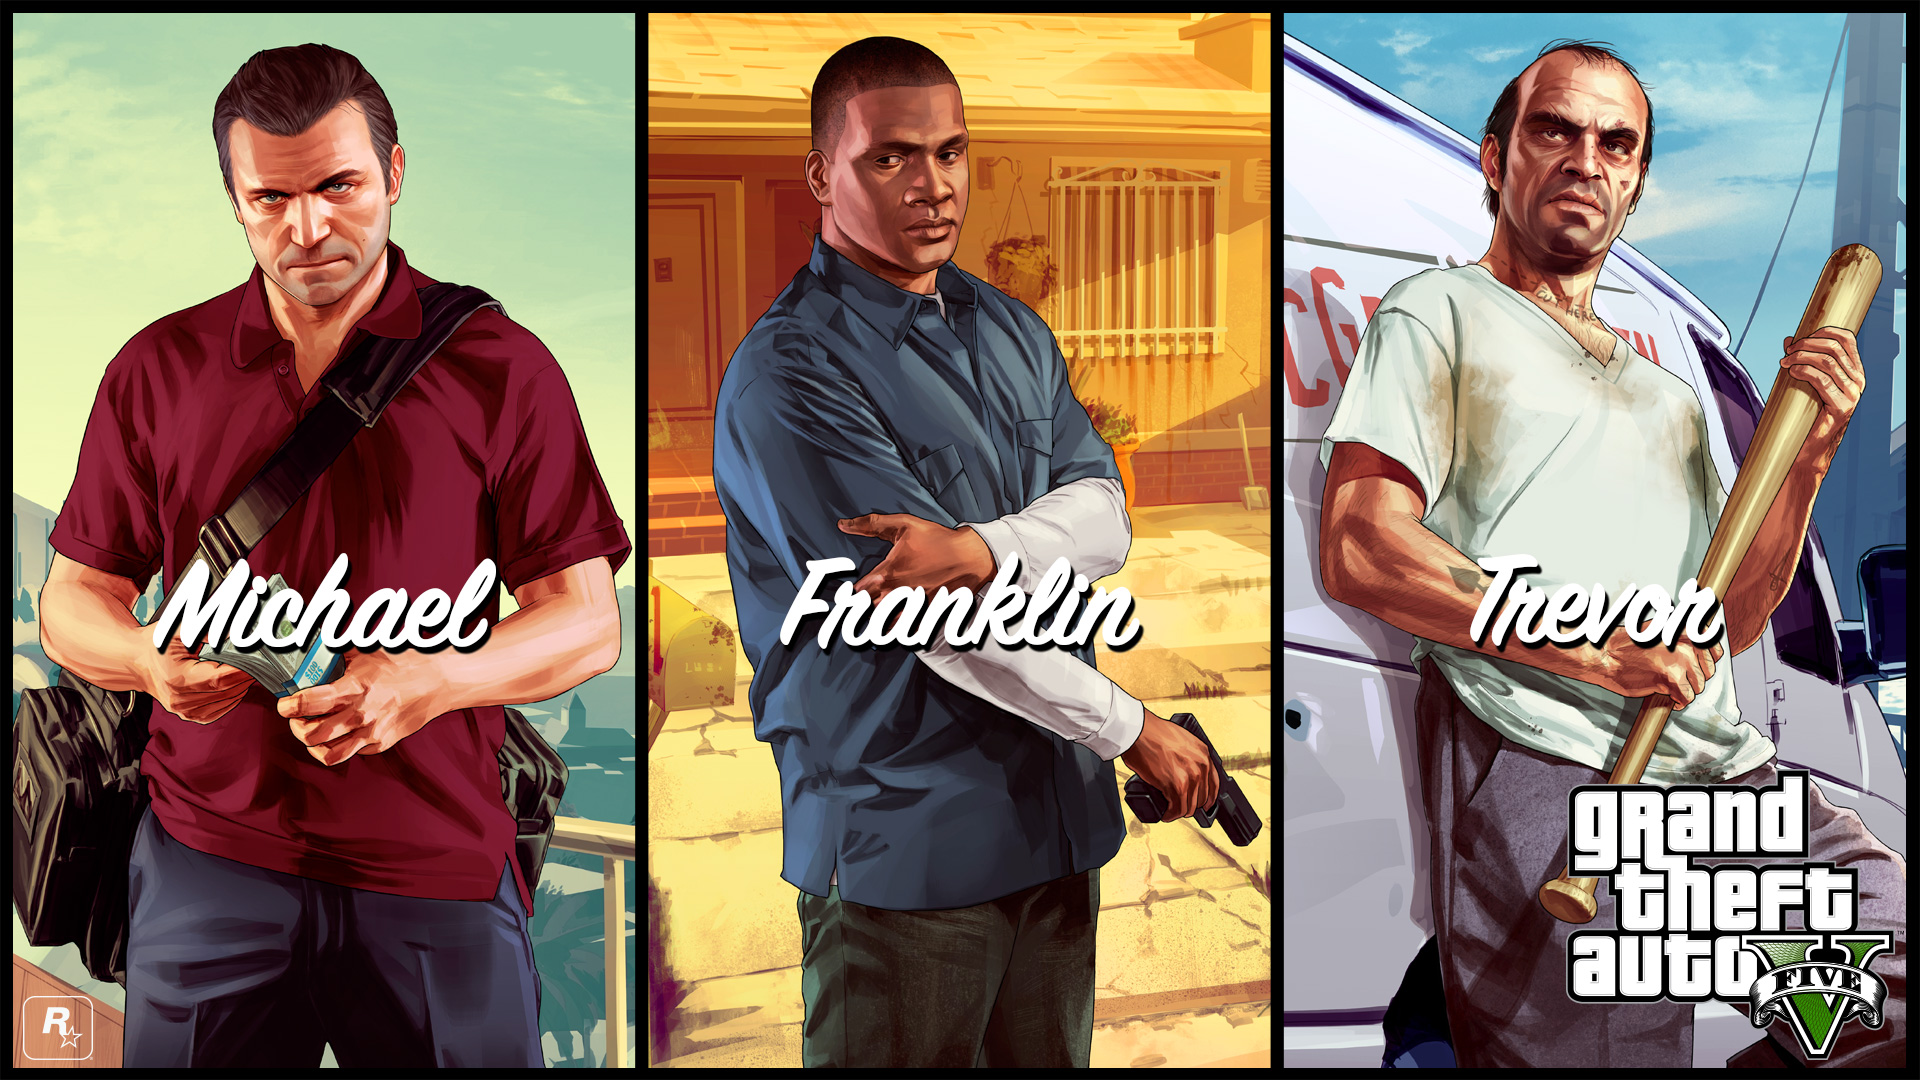 Grand_Theft _auto_V_wallpaper